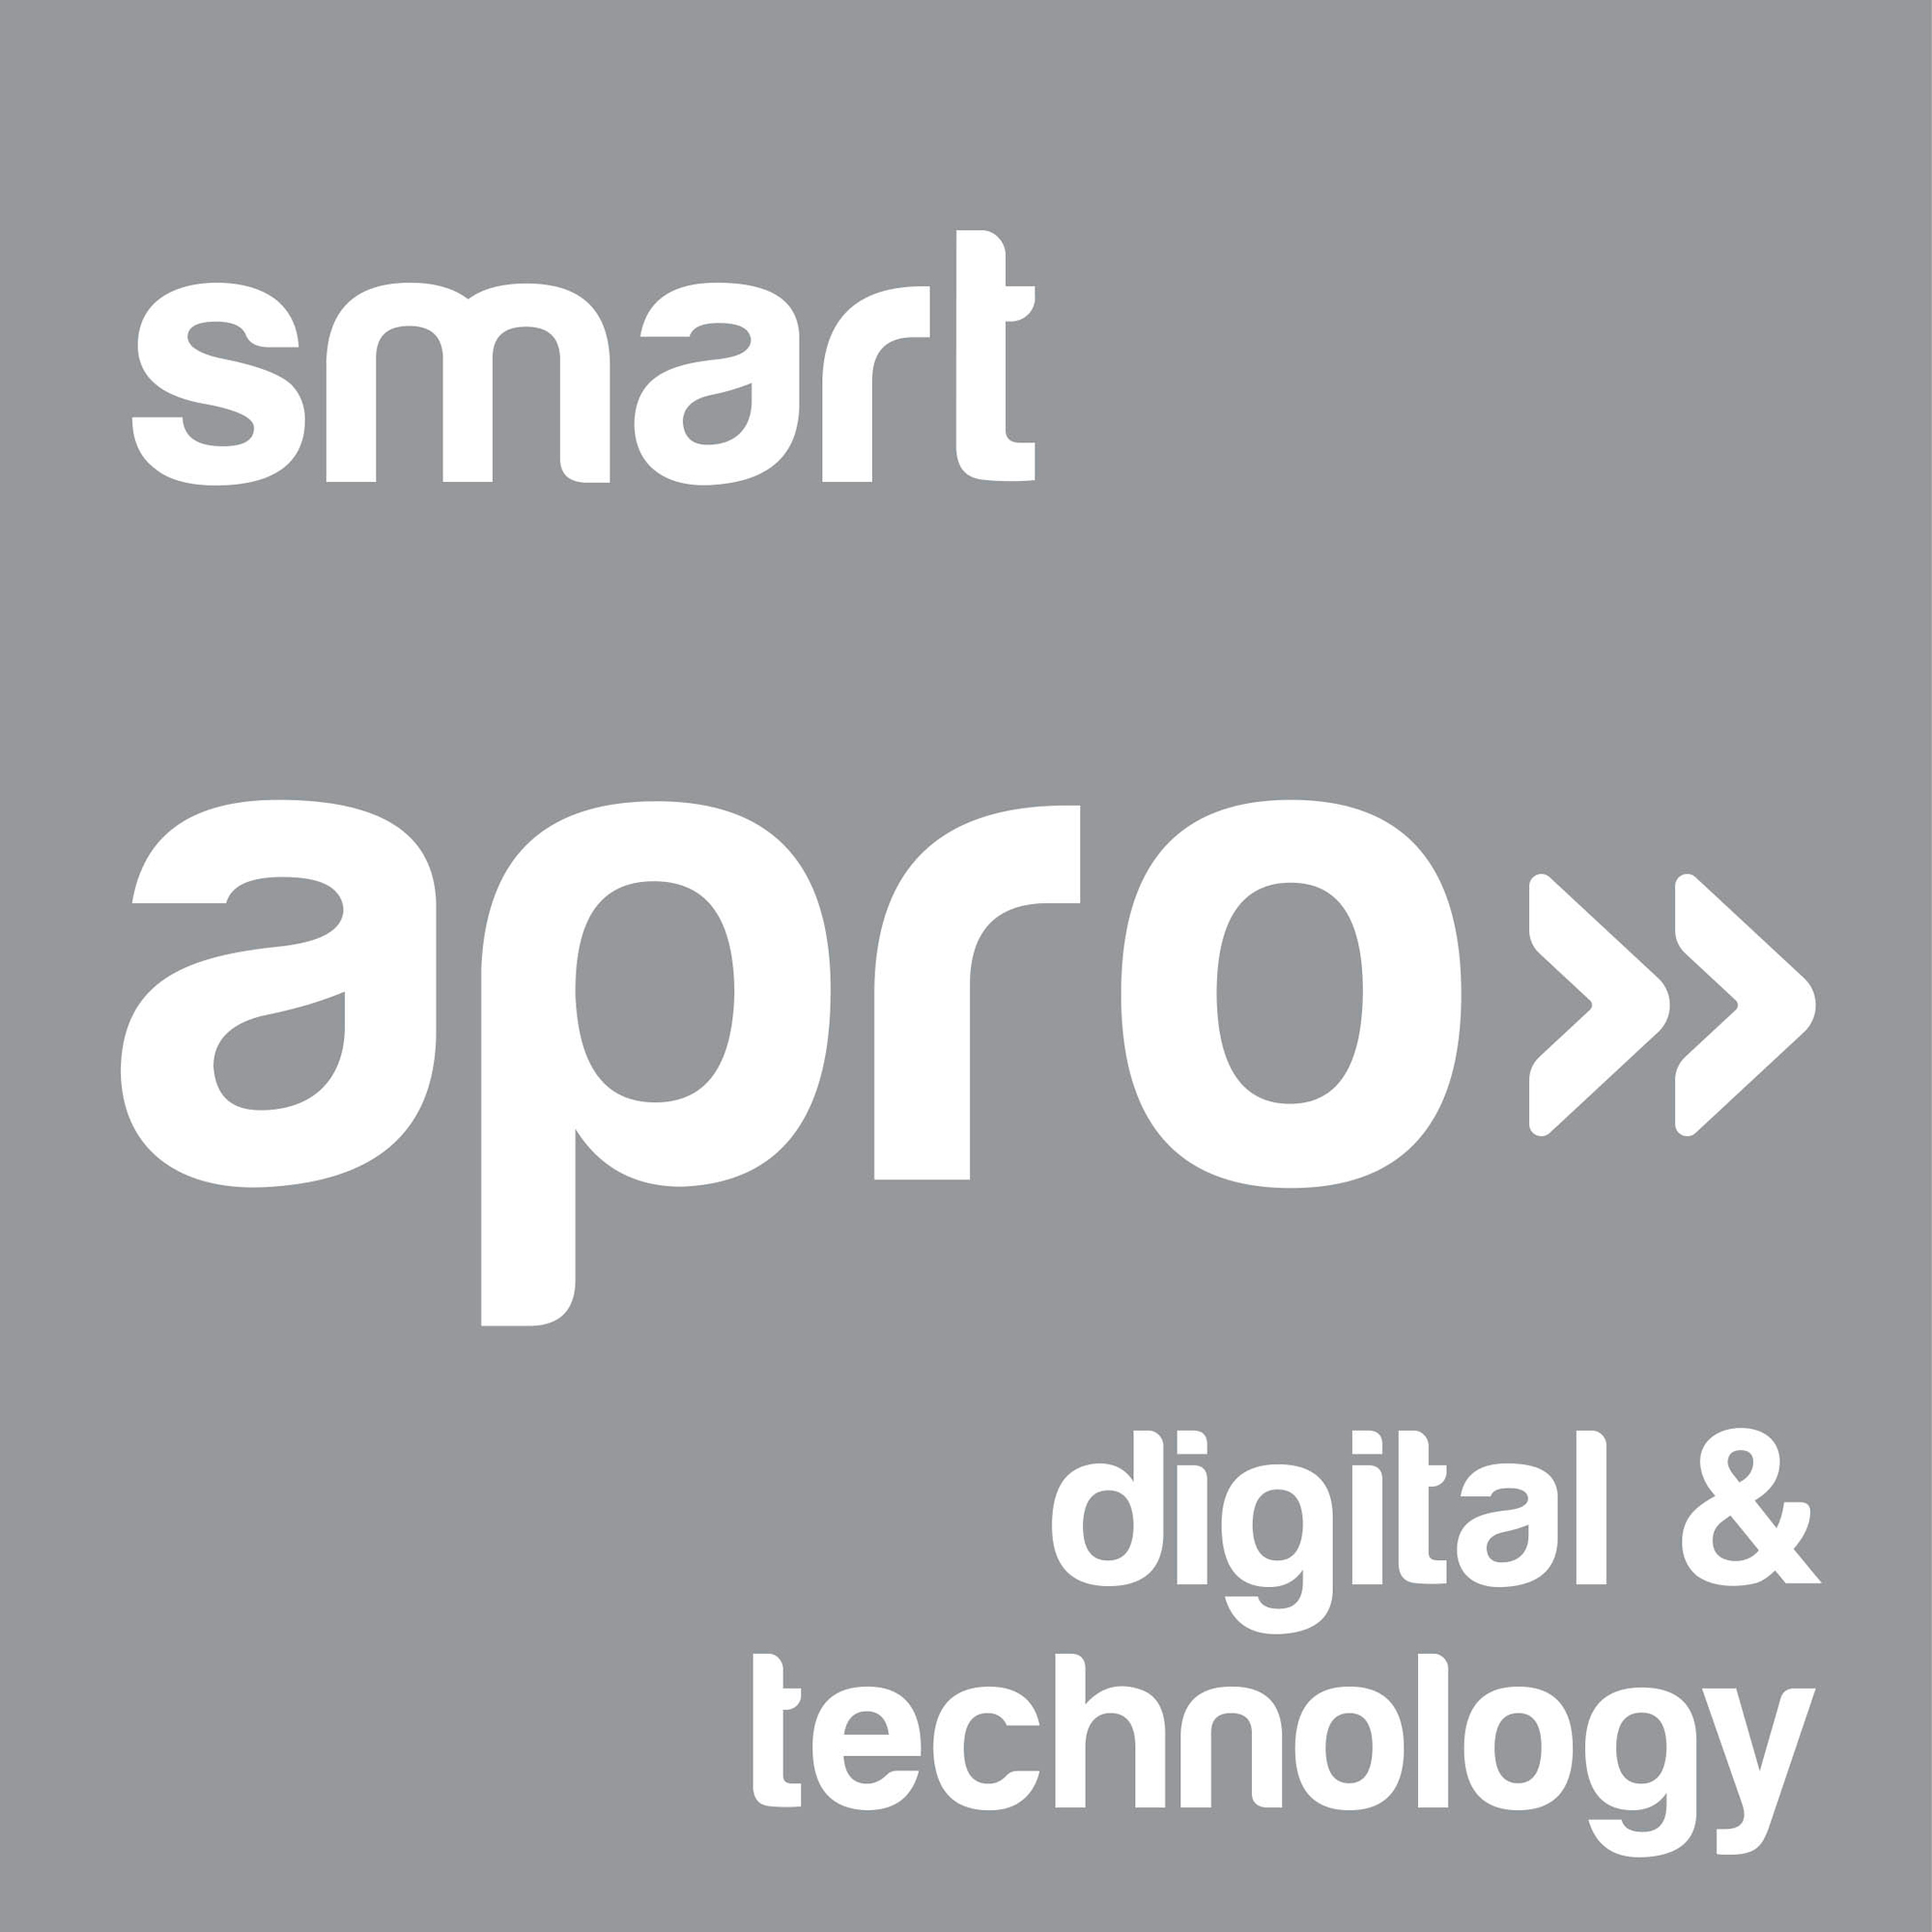 Apro digital&technology